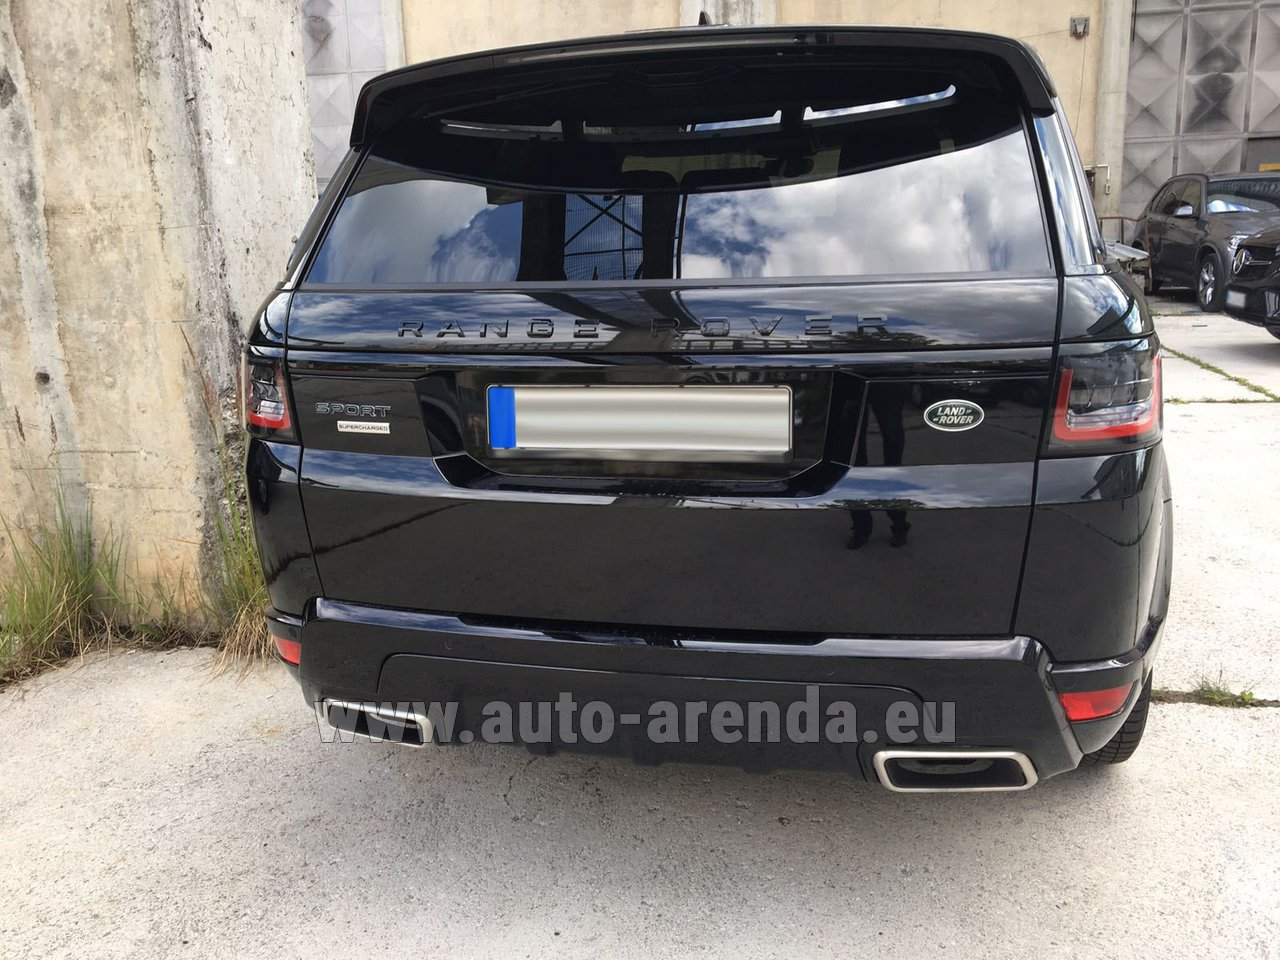 saint jean cap ferrat land rover range rover sport rental. Black Bedroom Furniture Sets. Home Design Ideas